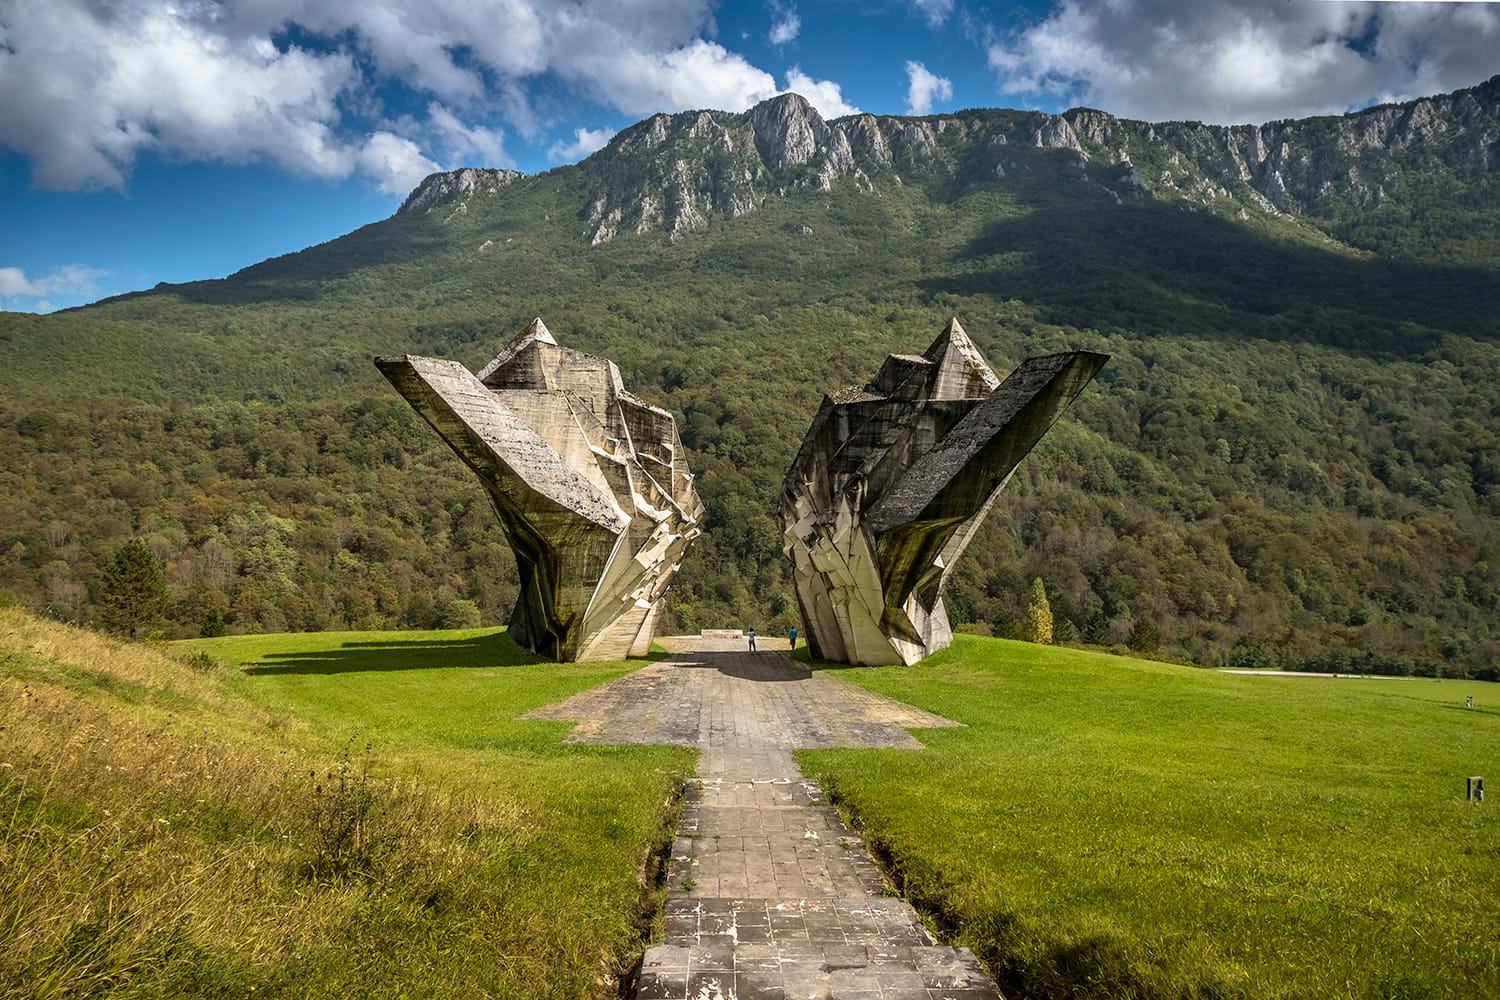 Tjentiste World War II monument,Sutjeska National Park, Bosnia and Herzegovina